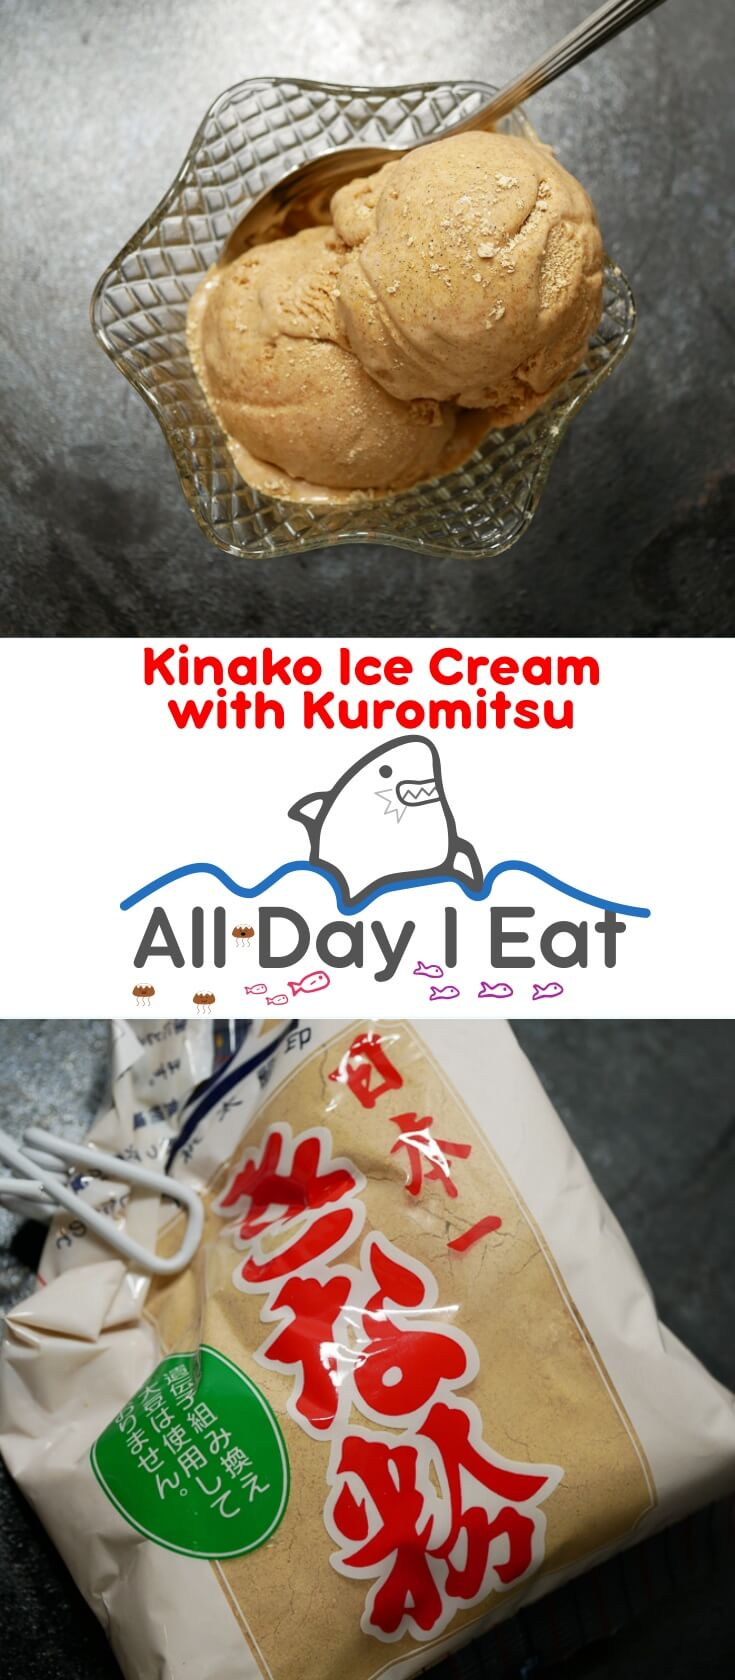 Kinako Ice Cream with Kuromitsu is an earthy ice cream sweetened with Okinawan black sugar syrup. The base flavor of this ice cream is made of kinako (roasted soy bean flour) that not only deepens the flavor, but also adds a dense body to each bite. This is one ice cream that may just teleport your taste buds straight through heavens golden doors. Will you follow?